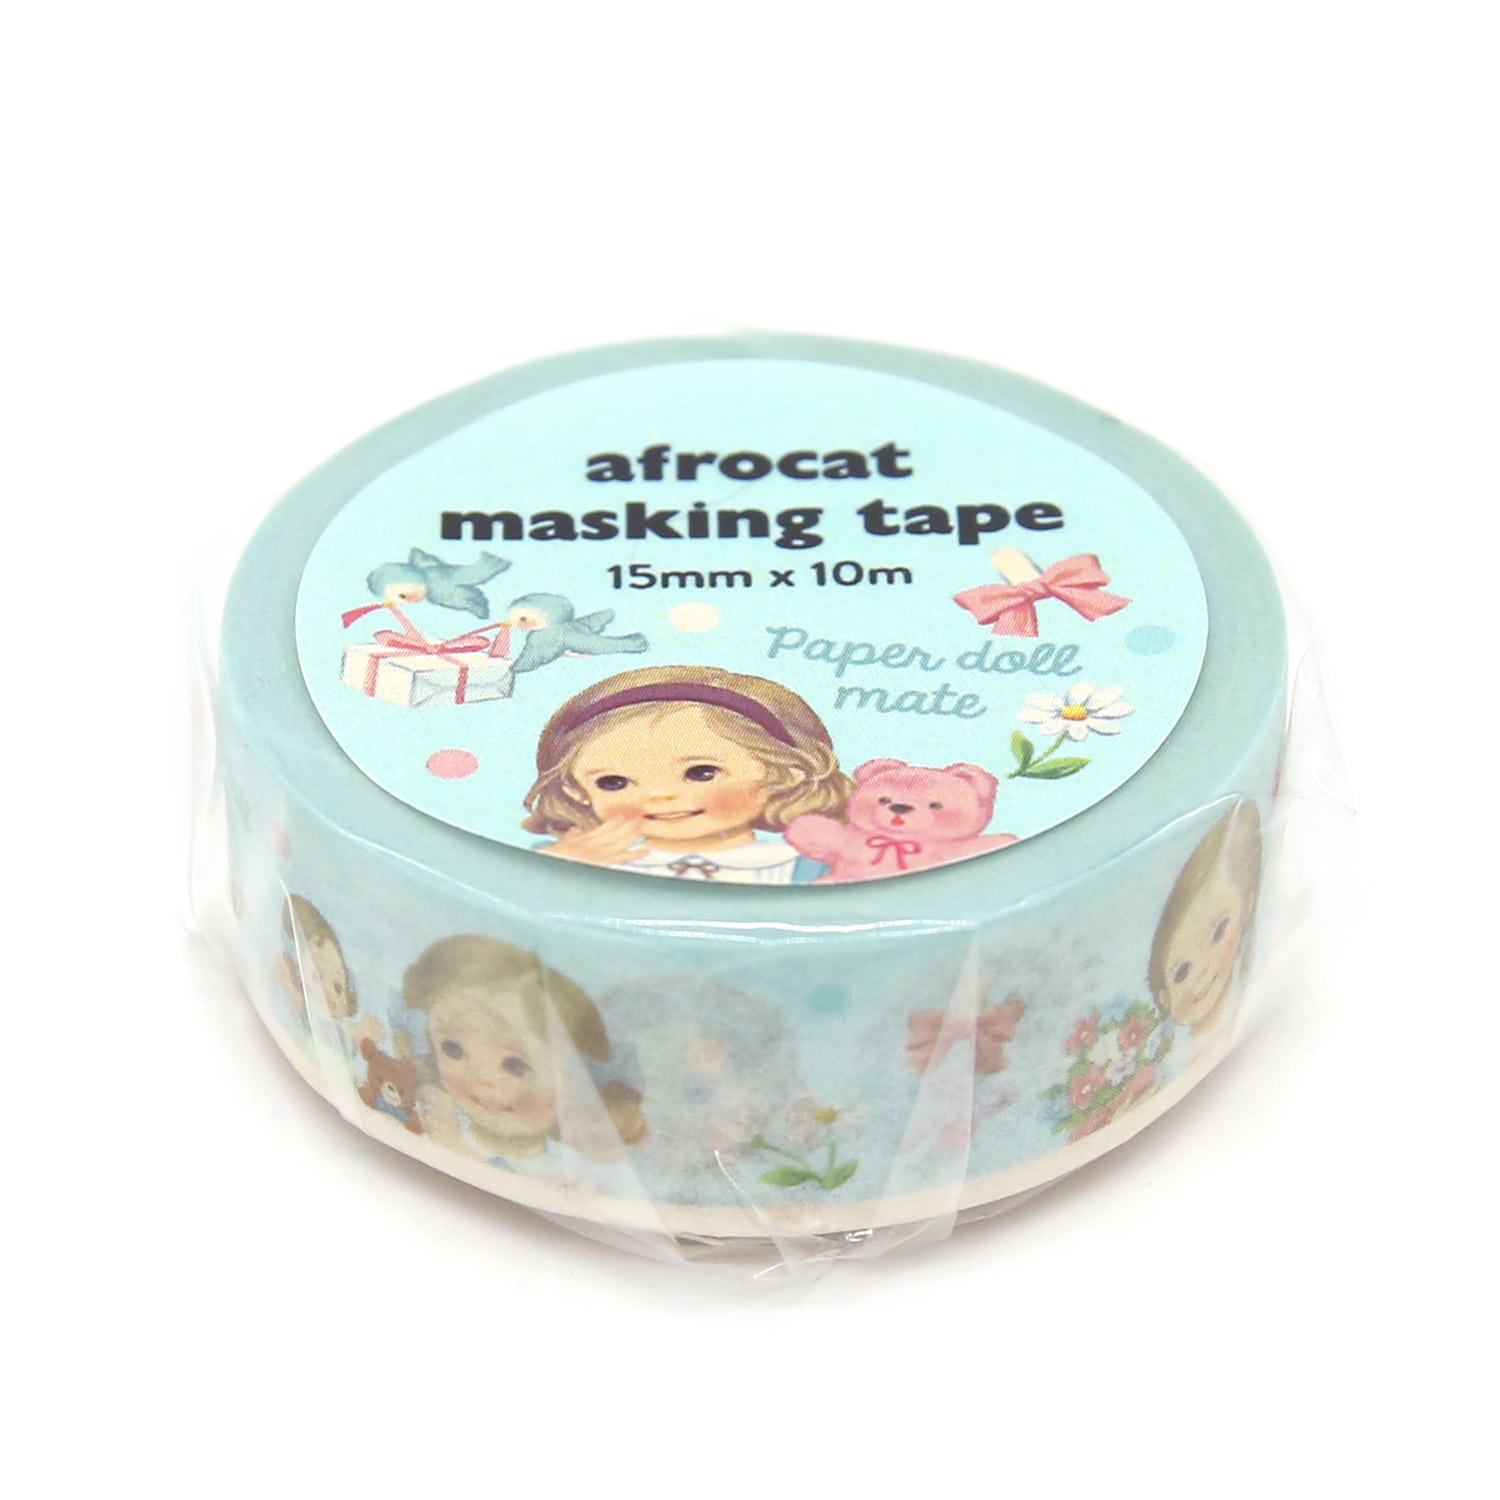 [afrocat masking tape] 1. Paper doll mate_ alice 15mm